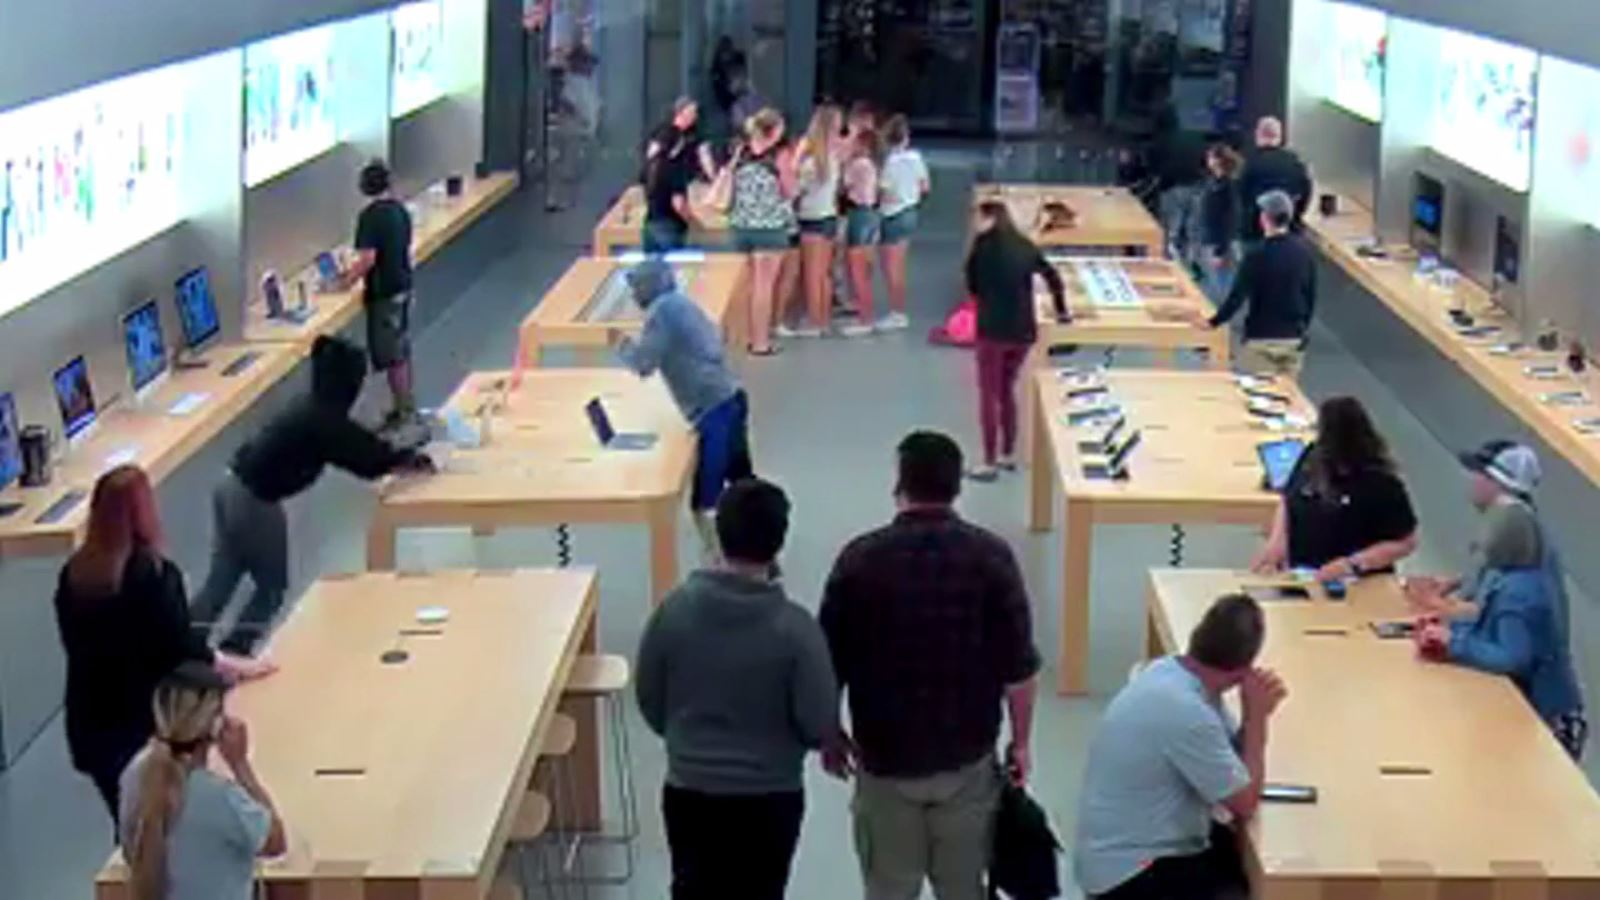 Video_released_of_Apple_Store_robbery_at_0_20180710003718